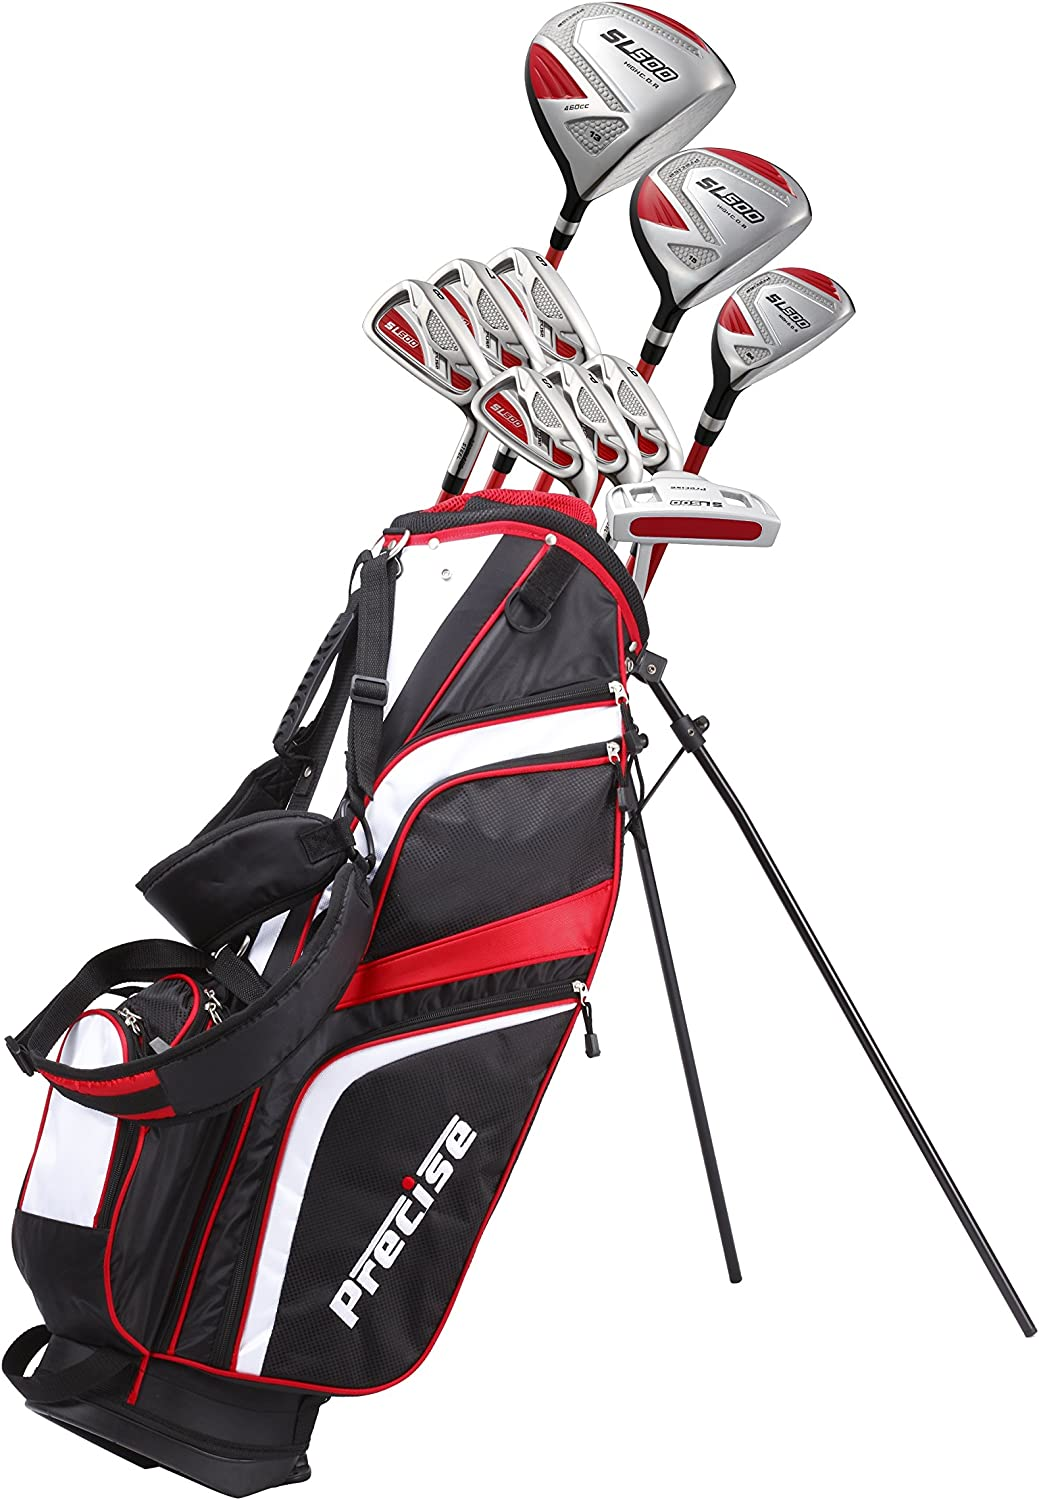 """15 Piece Ladies Womens Complete Golf Clubs Set Titanium Driver, S.S. Fairway, S.S. Hybrid, S.S. 6-PW Irons, Sand Wedge, Putter, Stand Bag, 3 H/C's Petite Size for Ladies 5'3"""" and Below - Right Hand"""